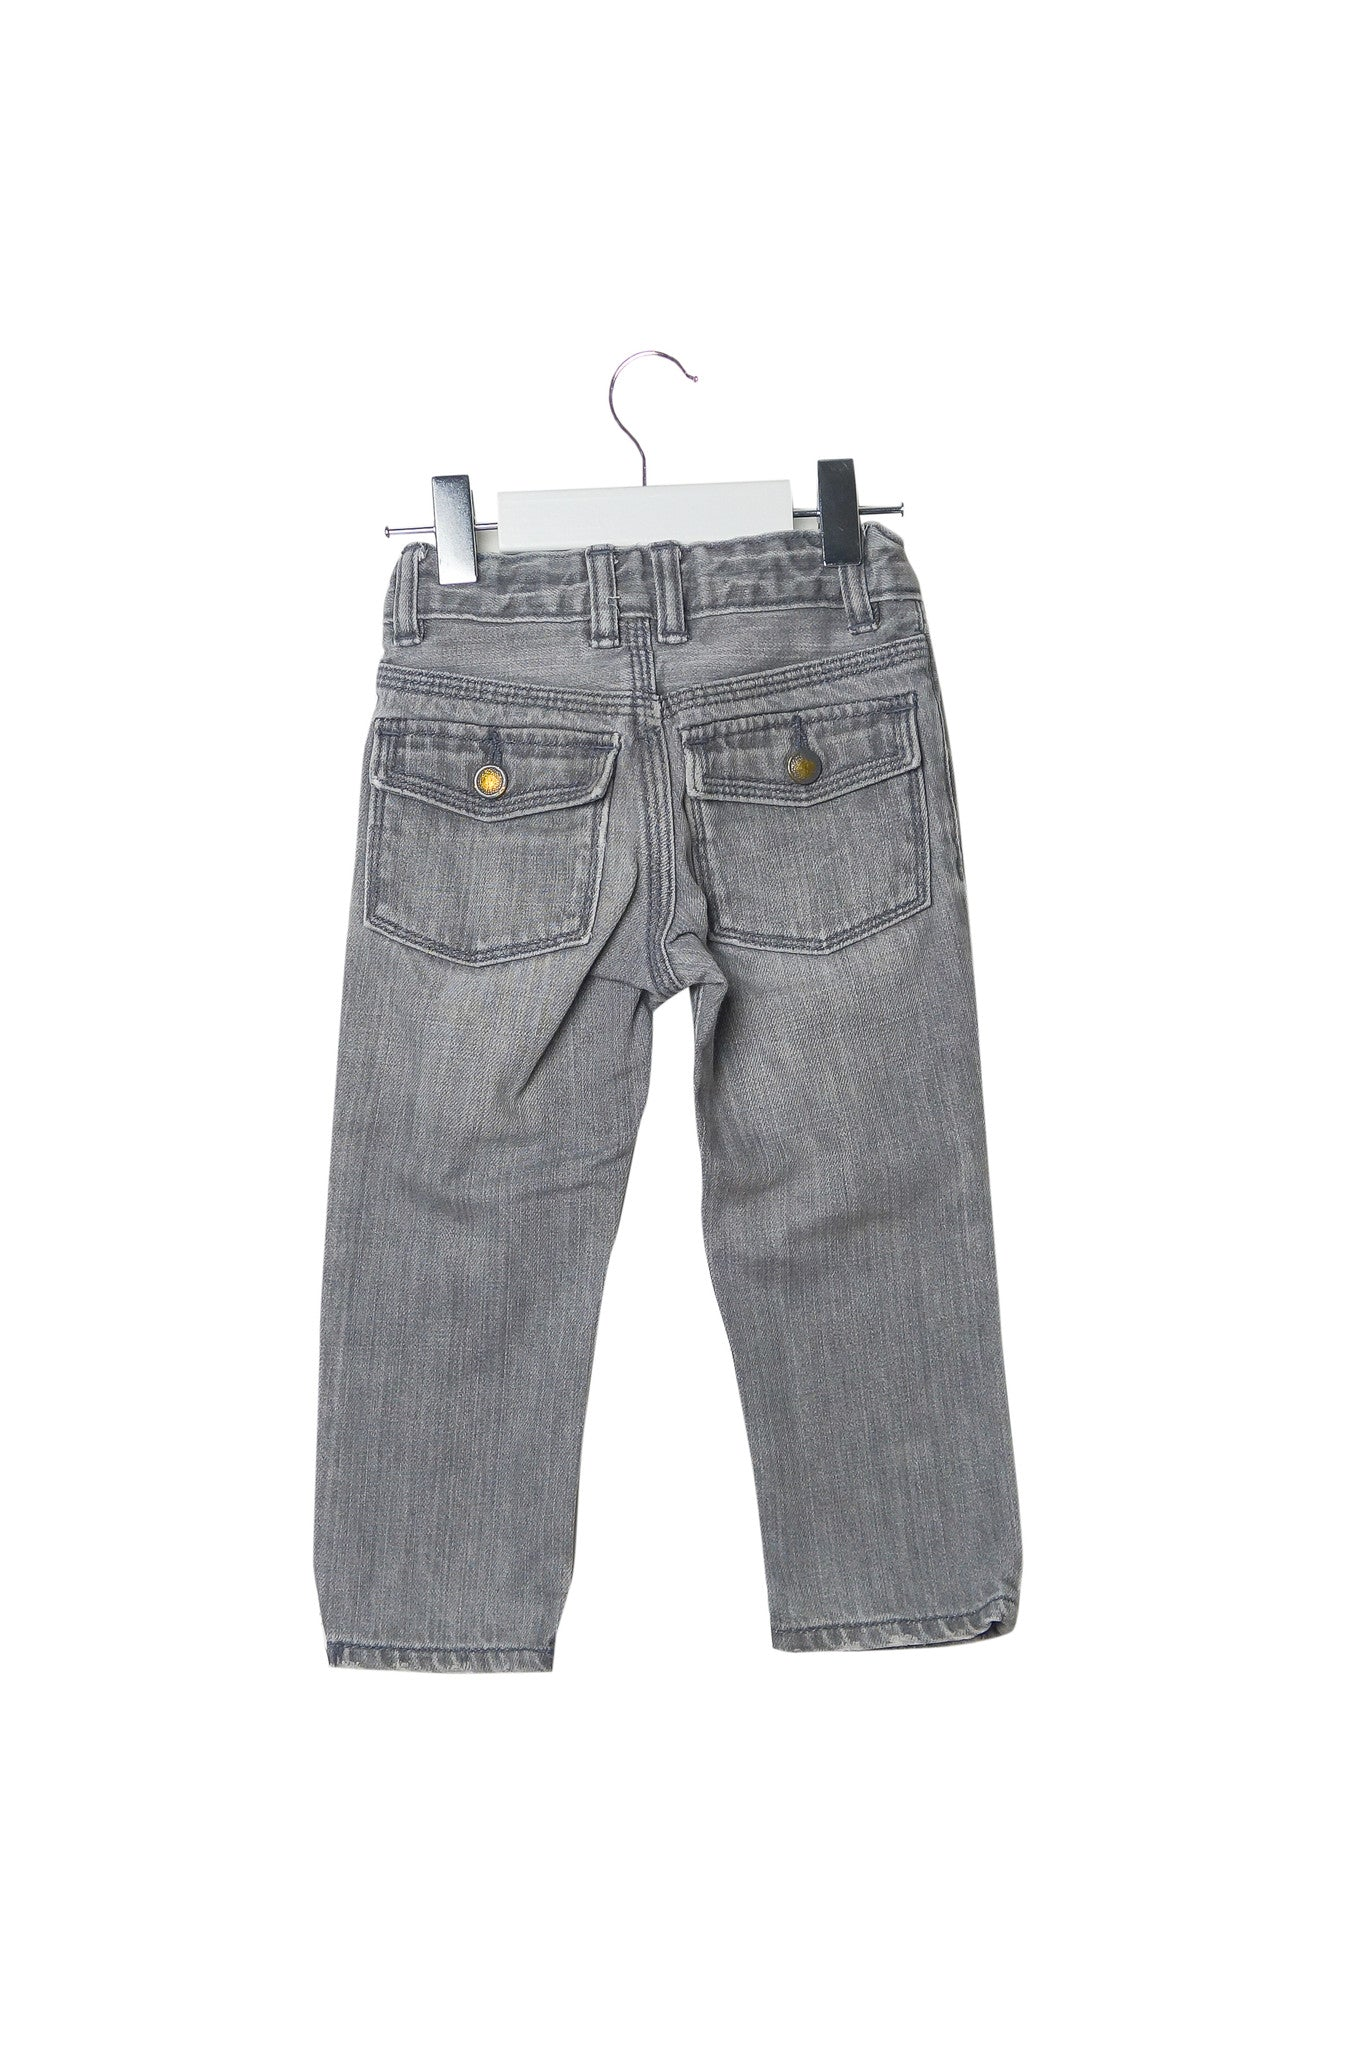 10002930 Stella McCartney Gap Kids~Jeans 2T at Retykle